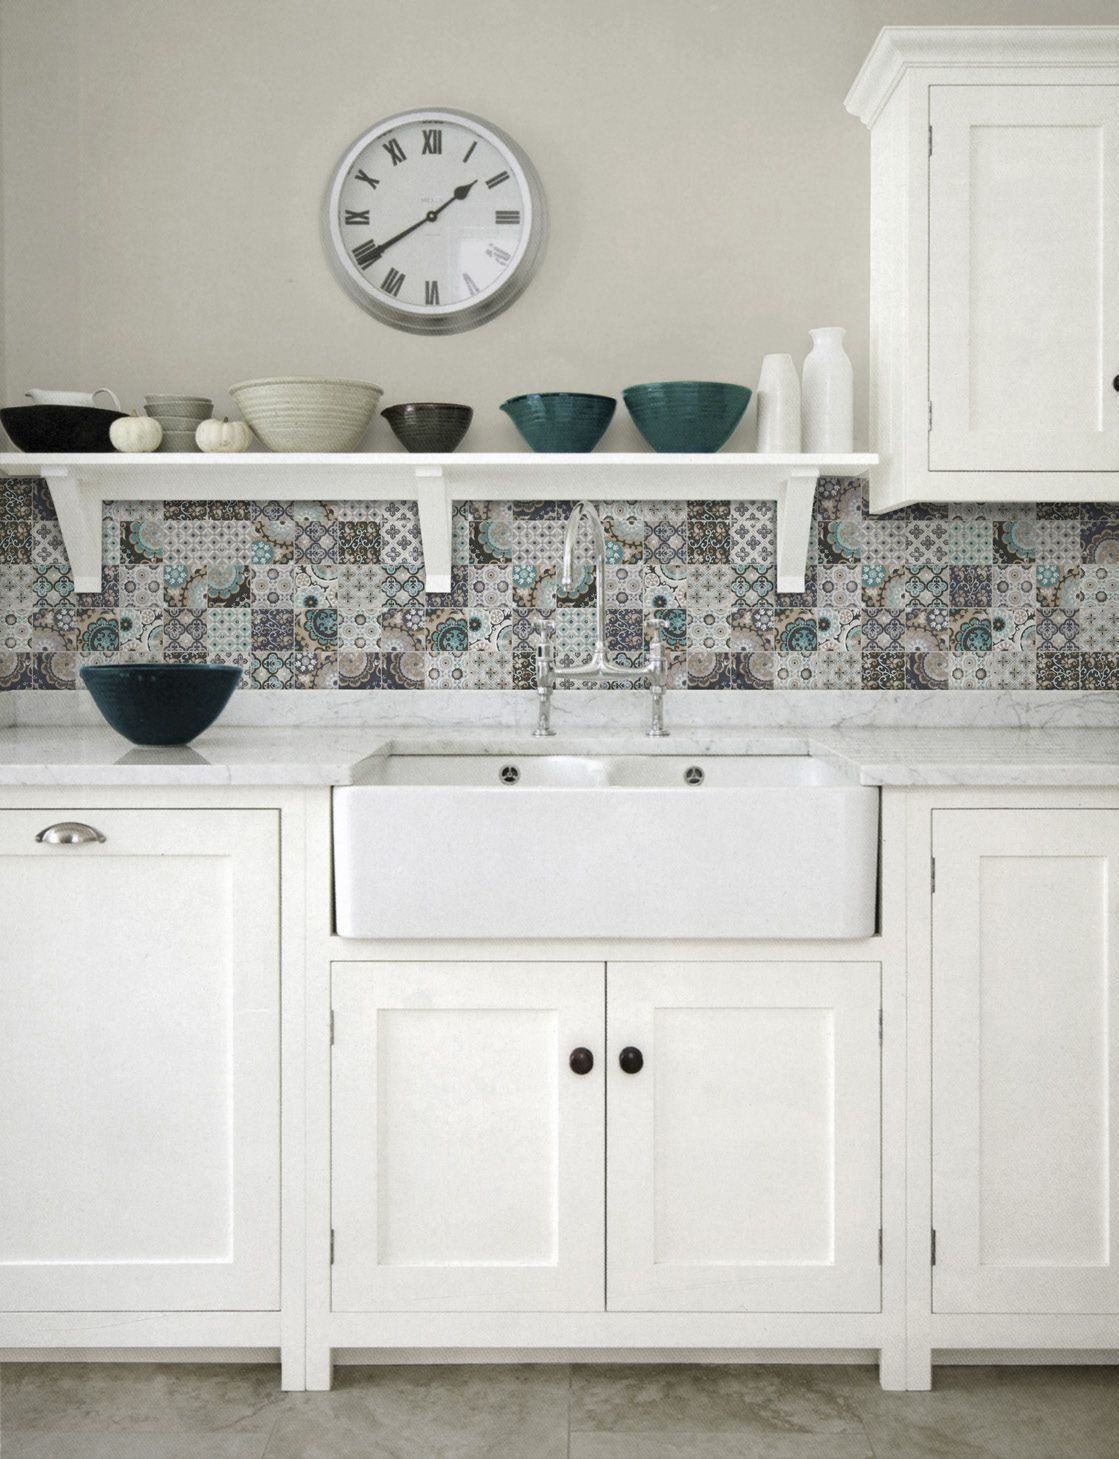 Beautiful Country Kitchen Backsplash Ideas Part - 11: Patchwork Backsplash For Country Style Kitchen Ideas - Homestead By  Artistic Tile